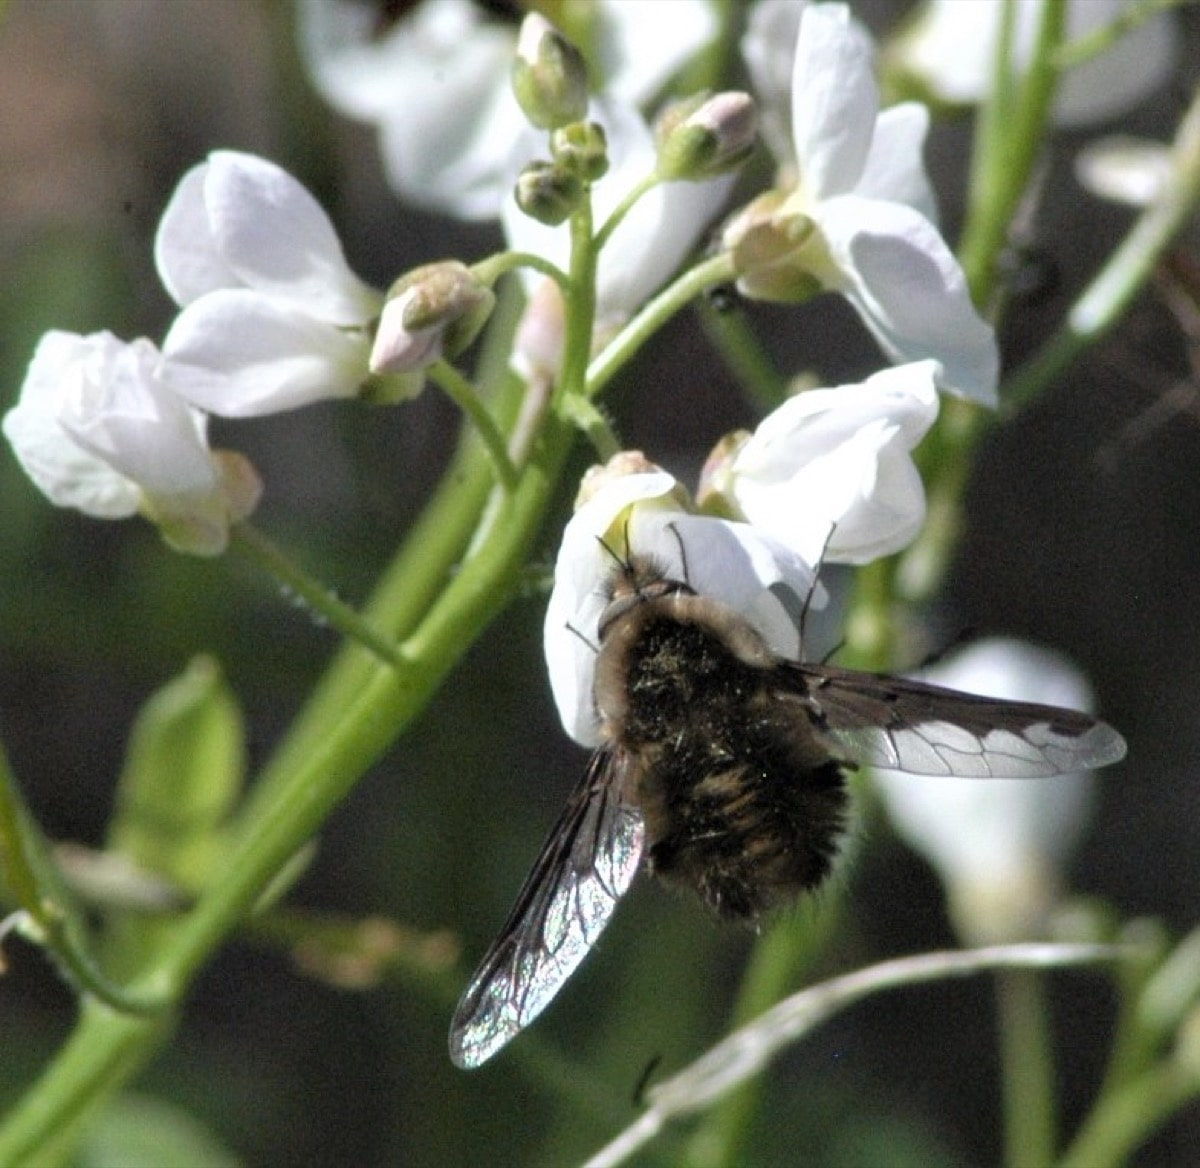 fly hanging on white-petaled flower with its head stuck inside